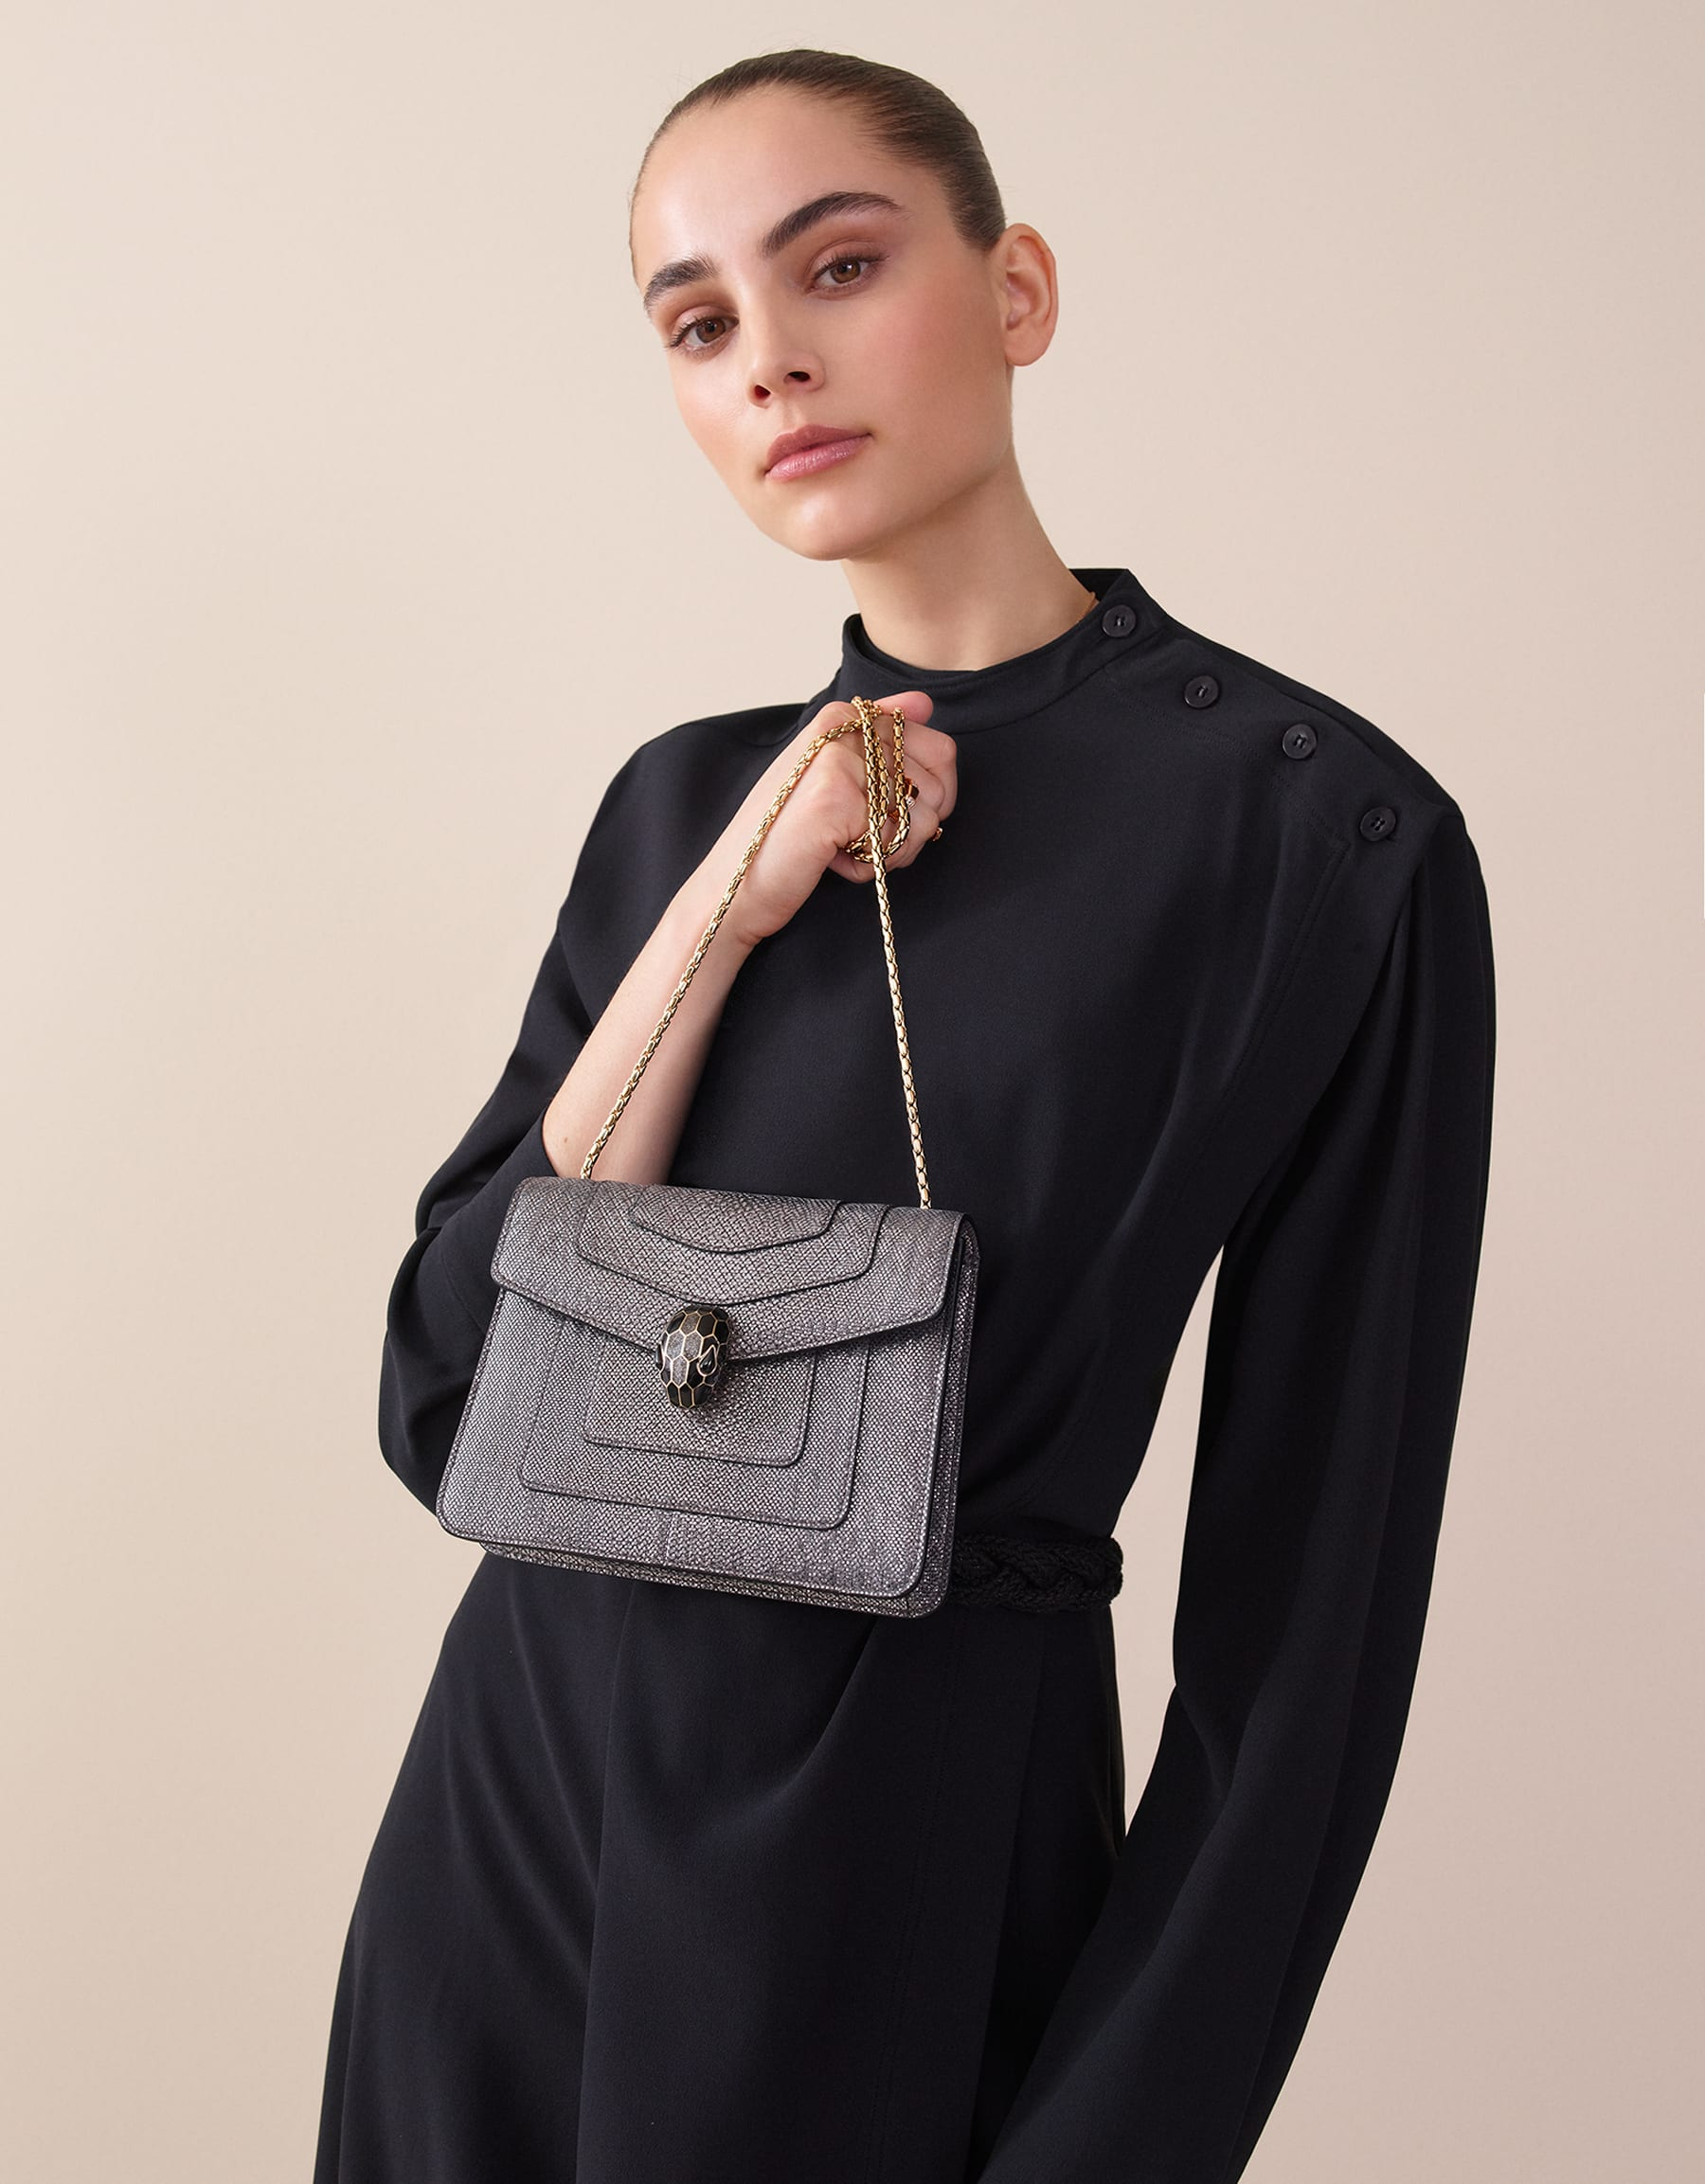 Serpenti Forever crossbody bag in charcoal diamond metallic karung skin. Snakehead closure in light gold plated brass decorated with glitter charcoal diamond and shiny black enamel, and black onyx eyes. 287939 image 5